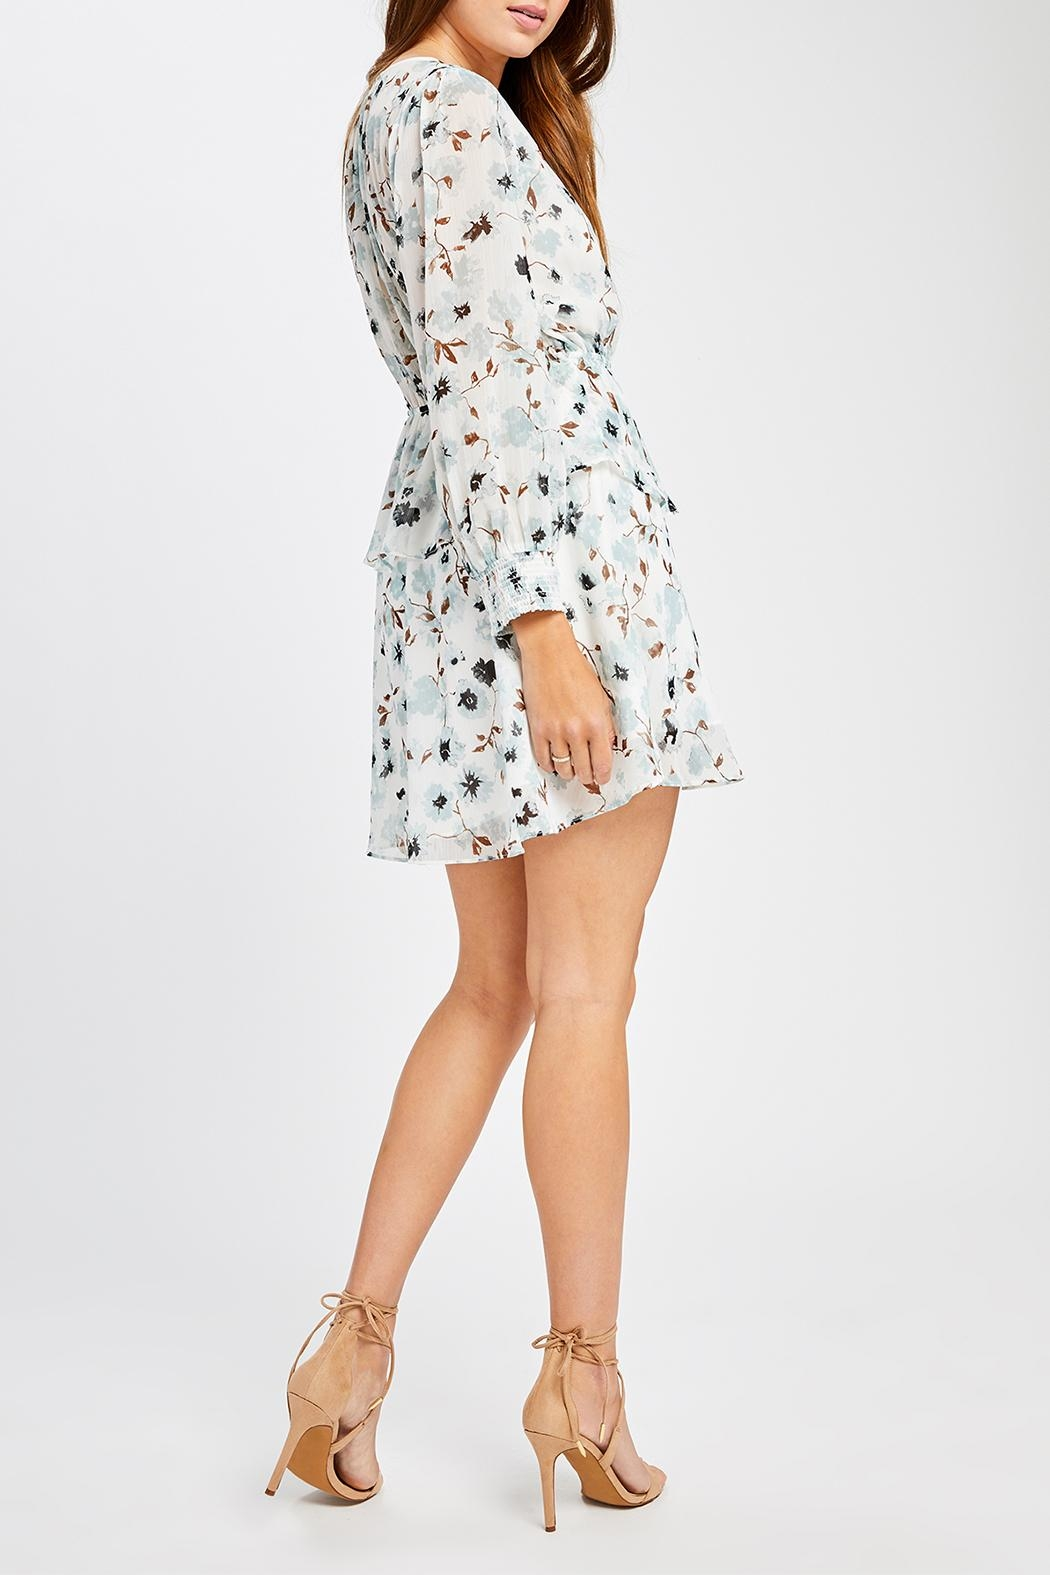 Gentle Fawn Camilla Dress - Side Cropped Image